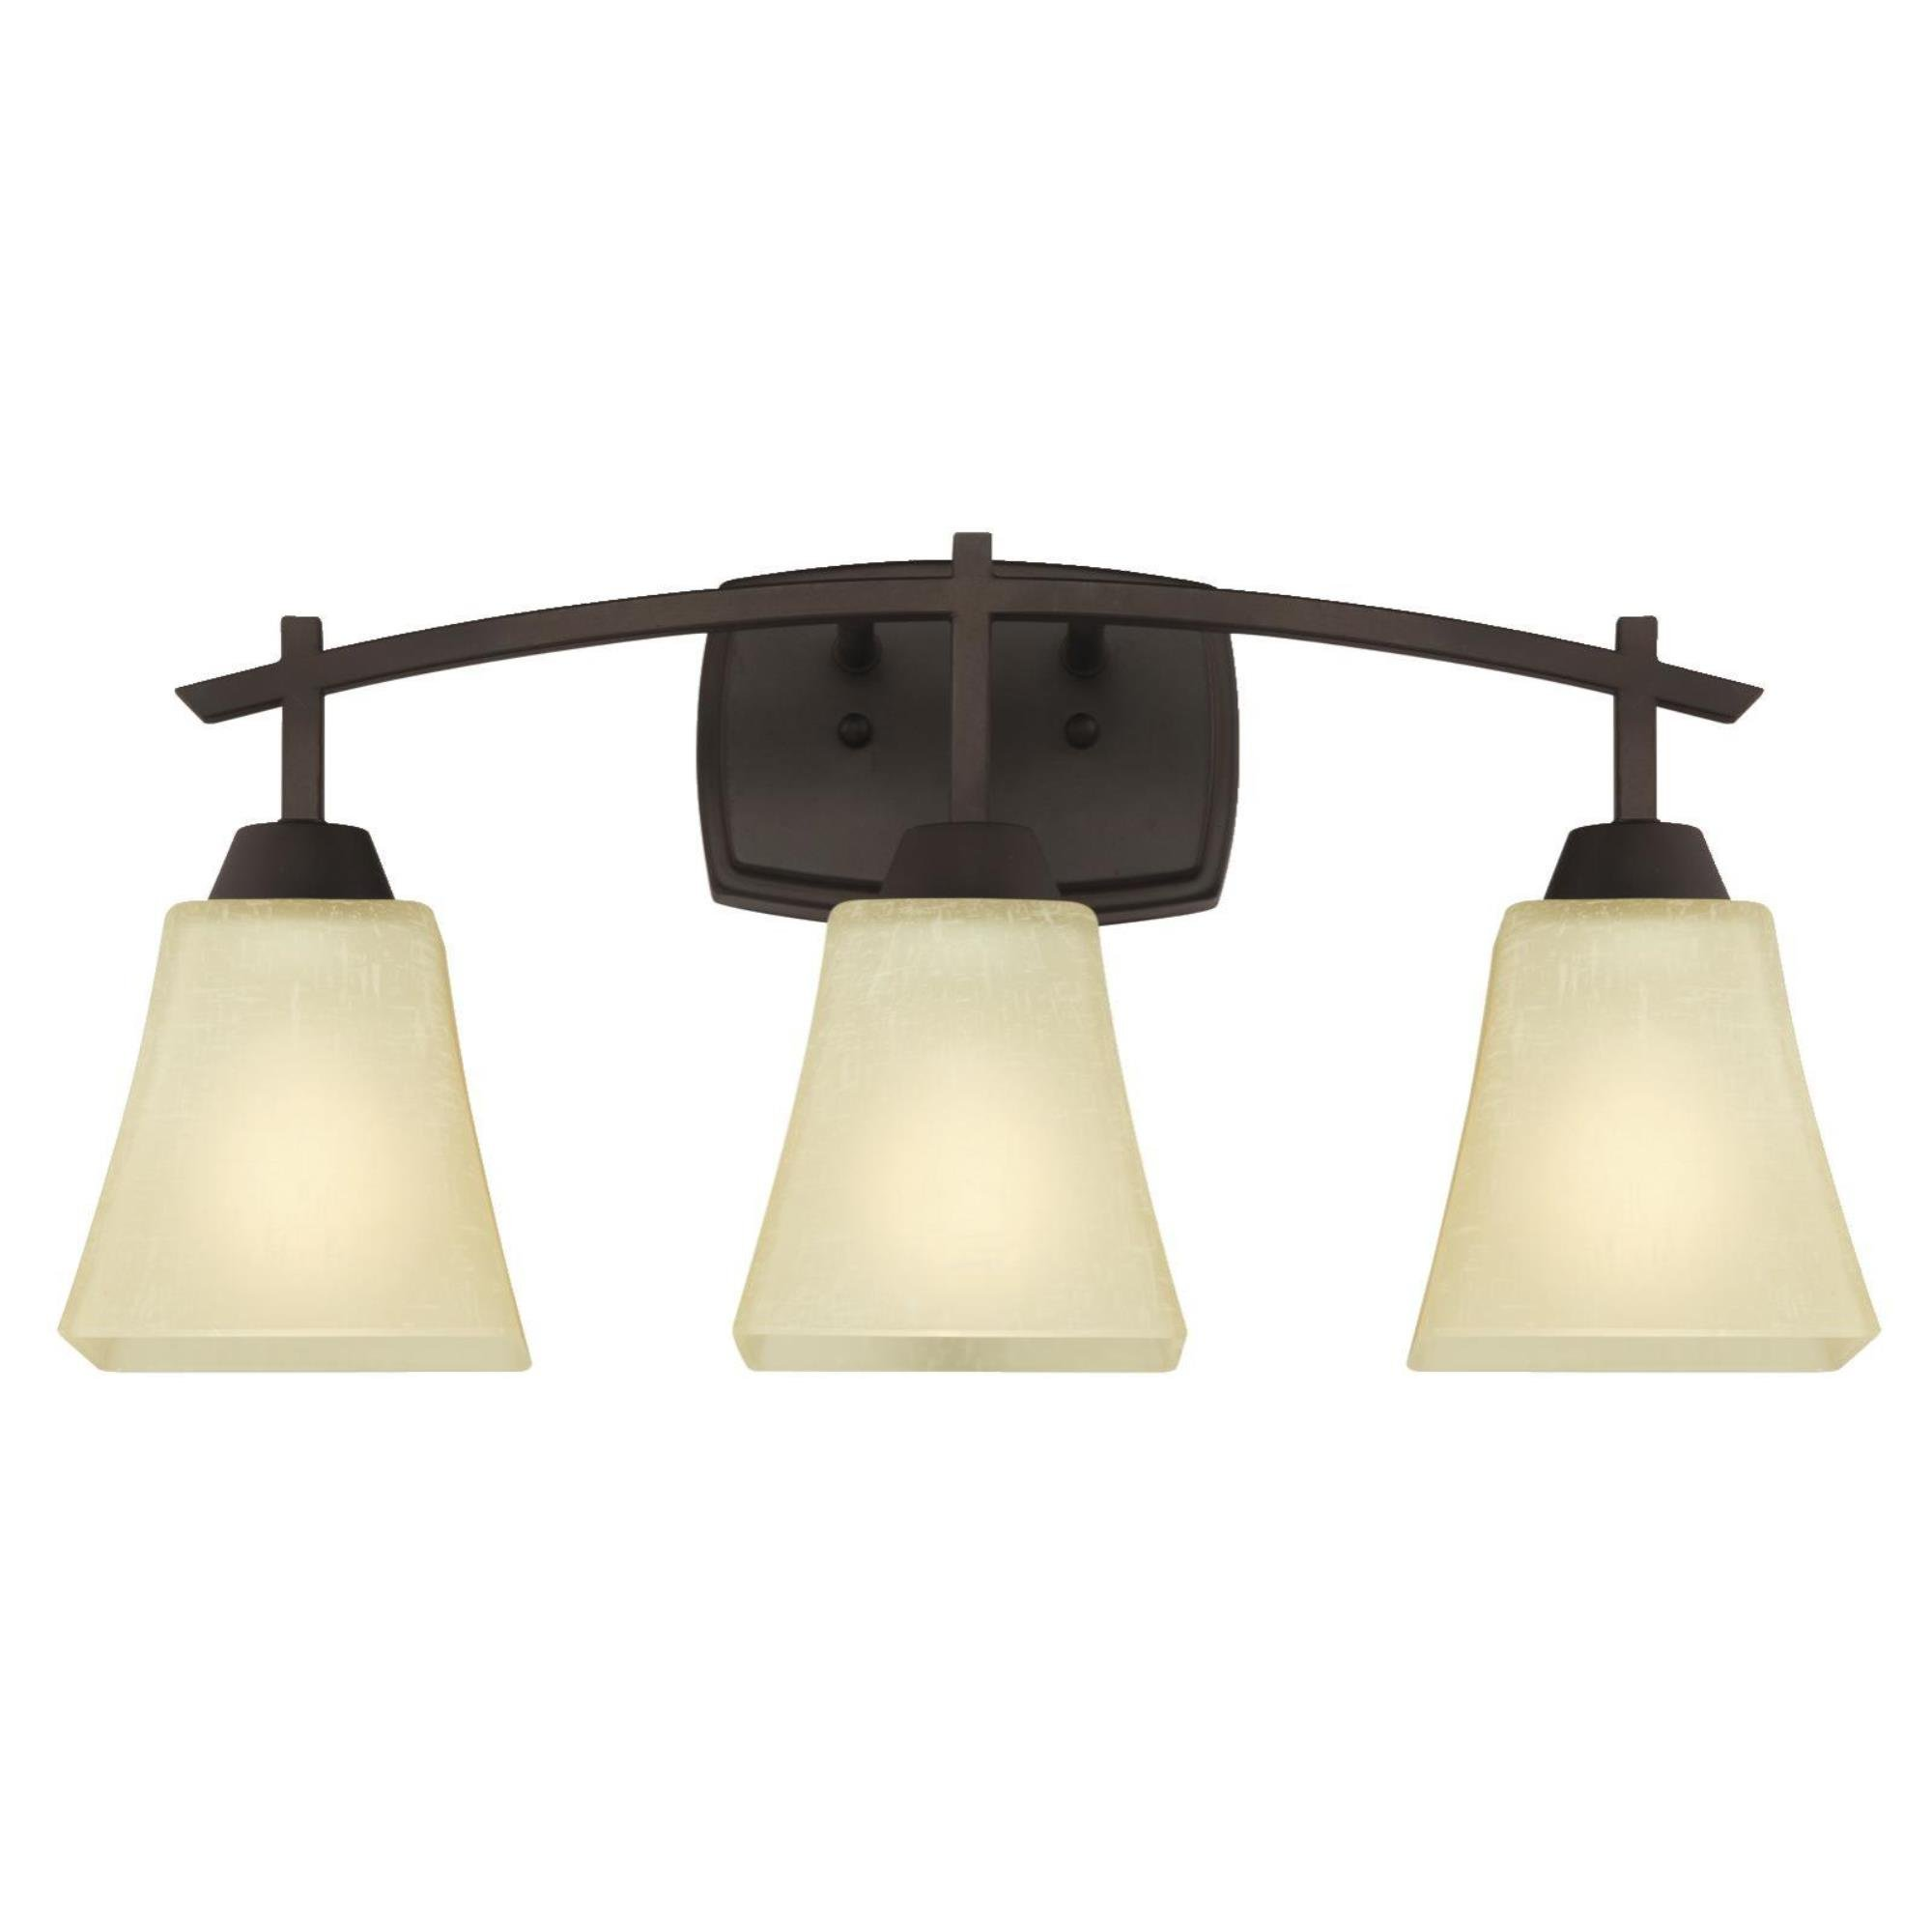 Westinghouse 6307500 Midori Three-Light Indoor Wall Fixture, Oil Rubbed Bronze Finish with Amber Linen Glass by Westinghouse